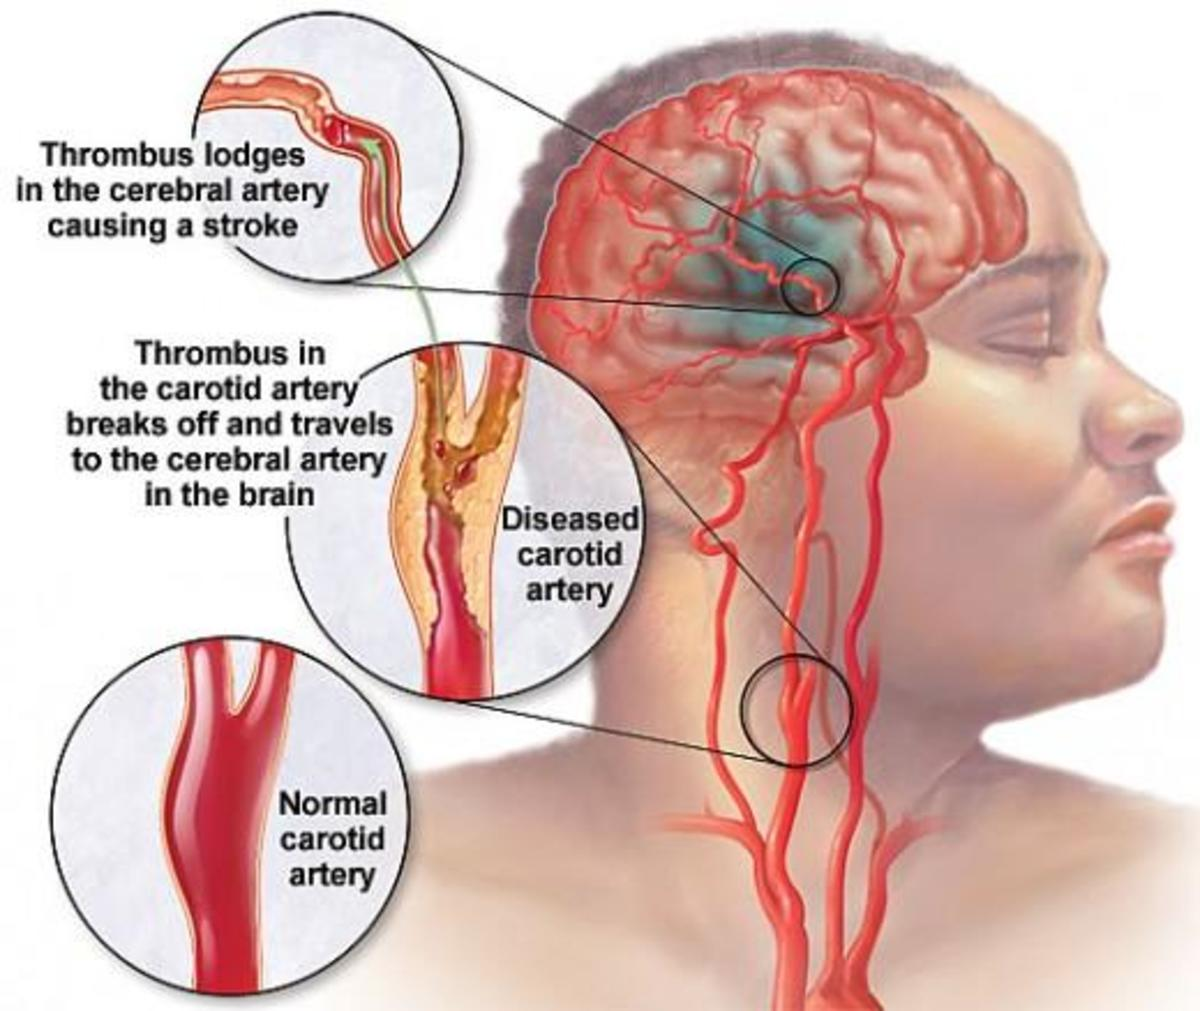 Chelation Therapy Cures Stroke (Blood Clot) - More Effectively than Conventional Methods